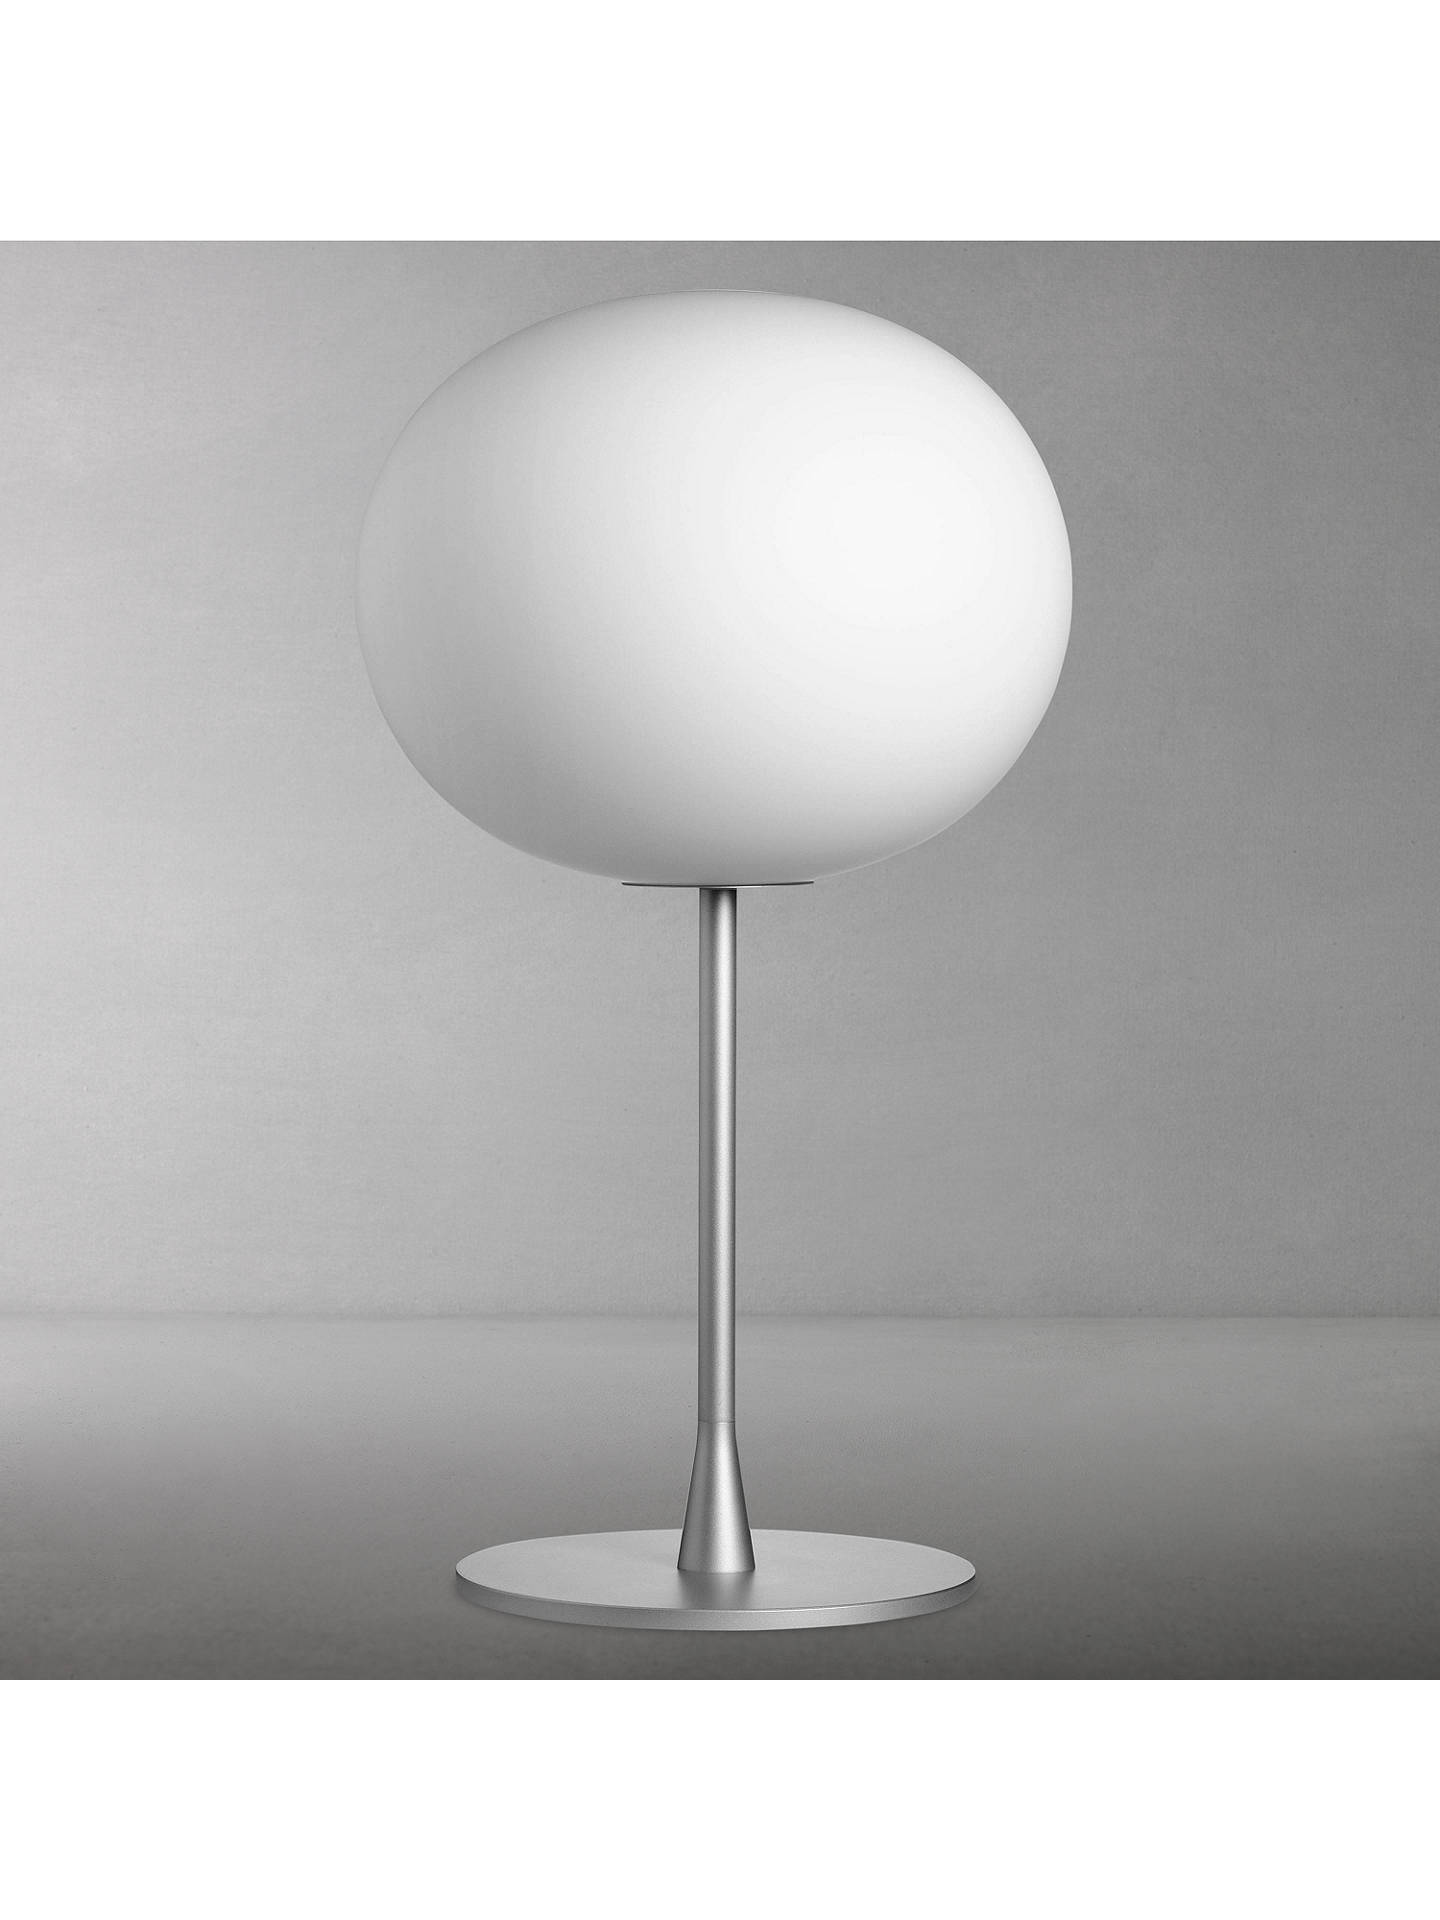 Flos Glo Ball T1 Table Lamp At John Lewis Partners